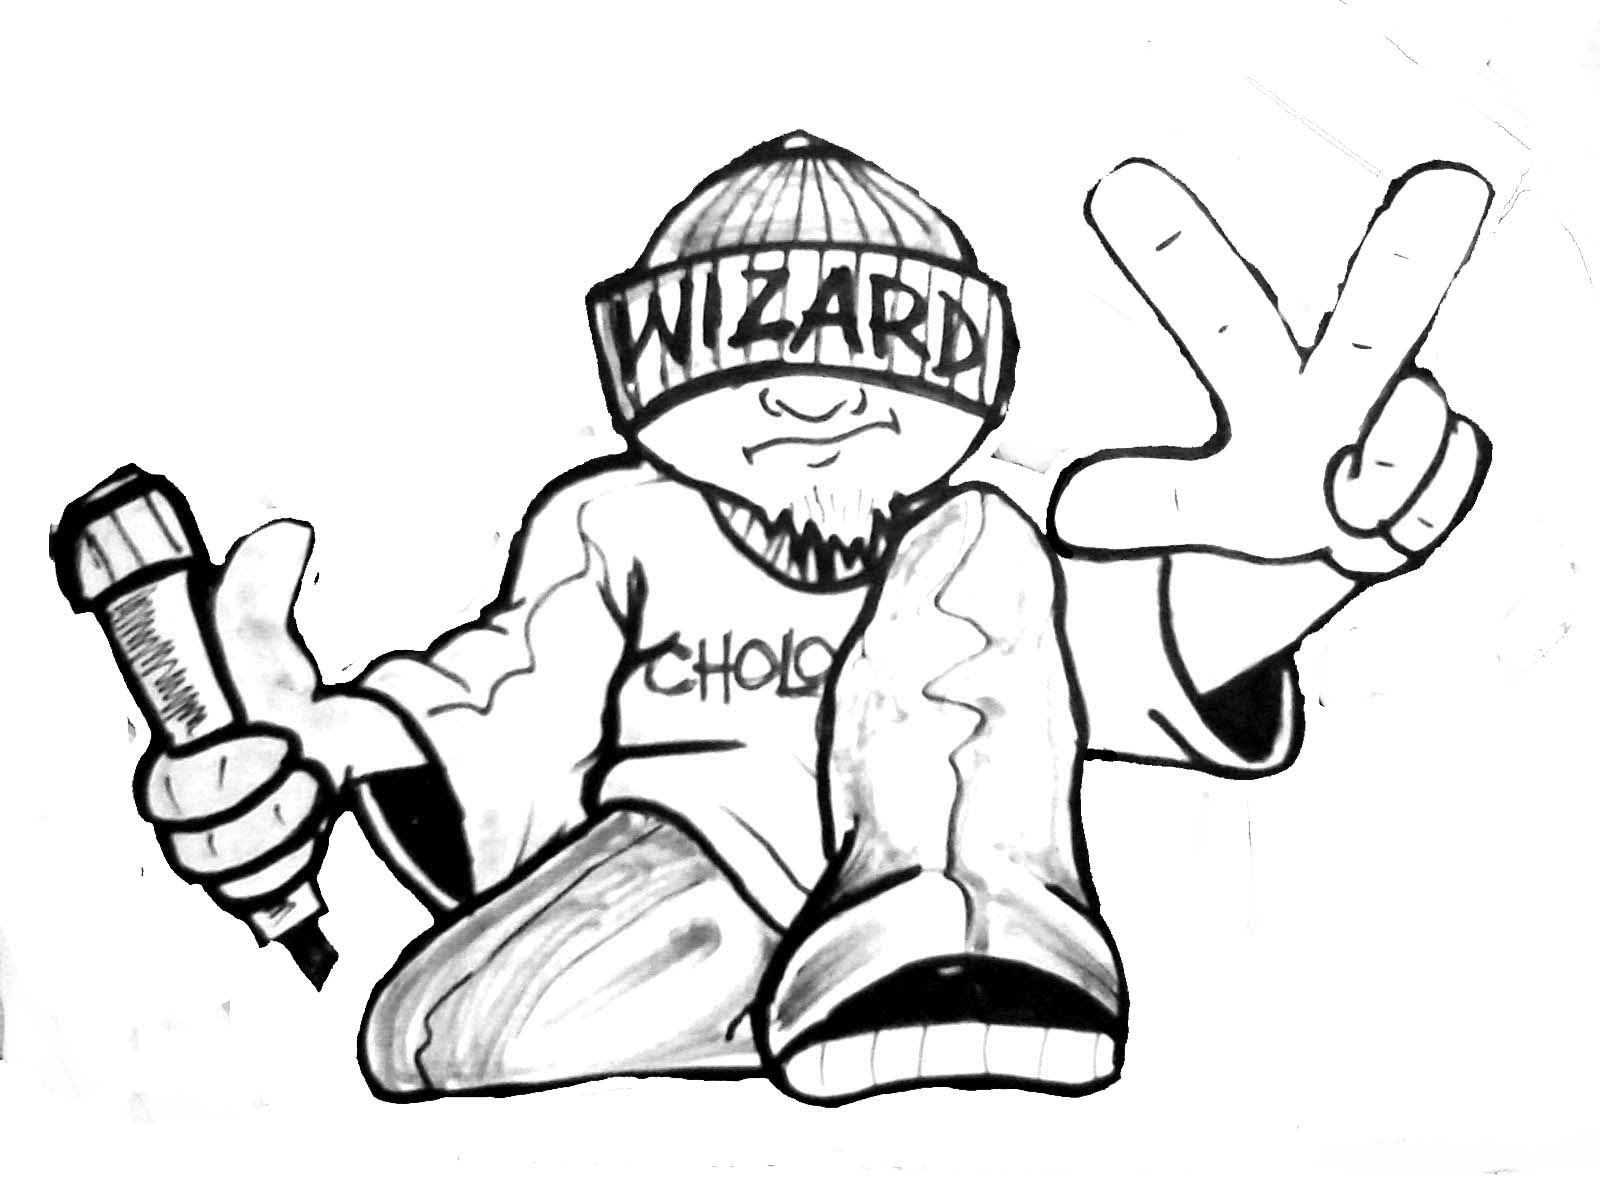 Drawing a cholo character by wizard oldschool mix 80s youtube